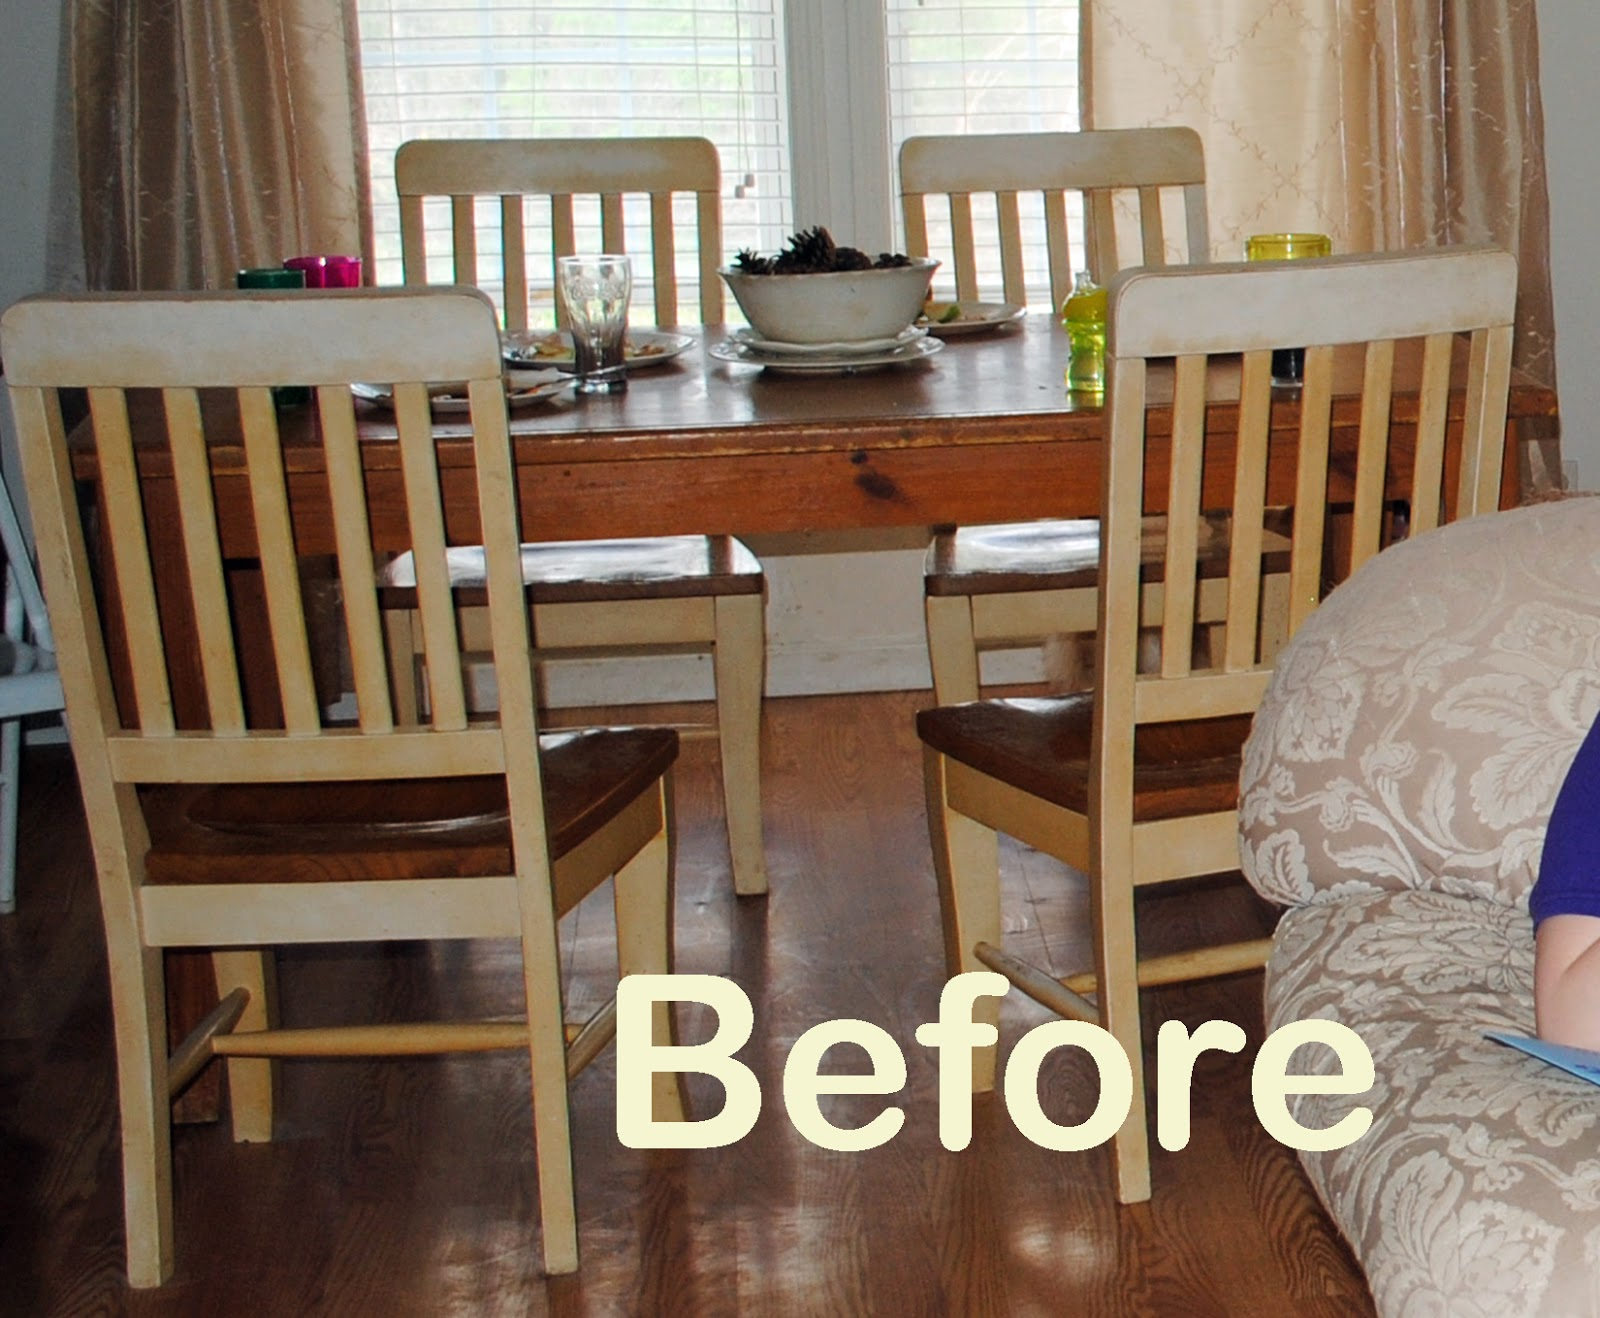 Refinish An Old Knotty Pine Dining Table: The Story